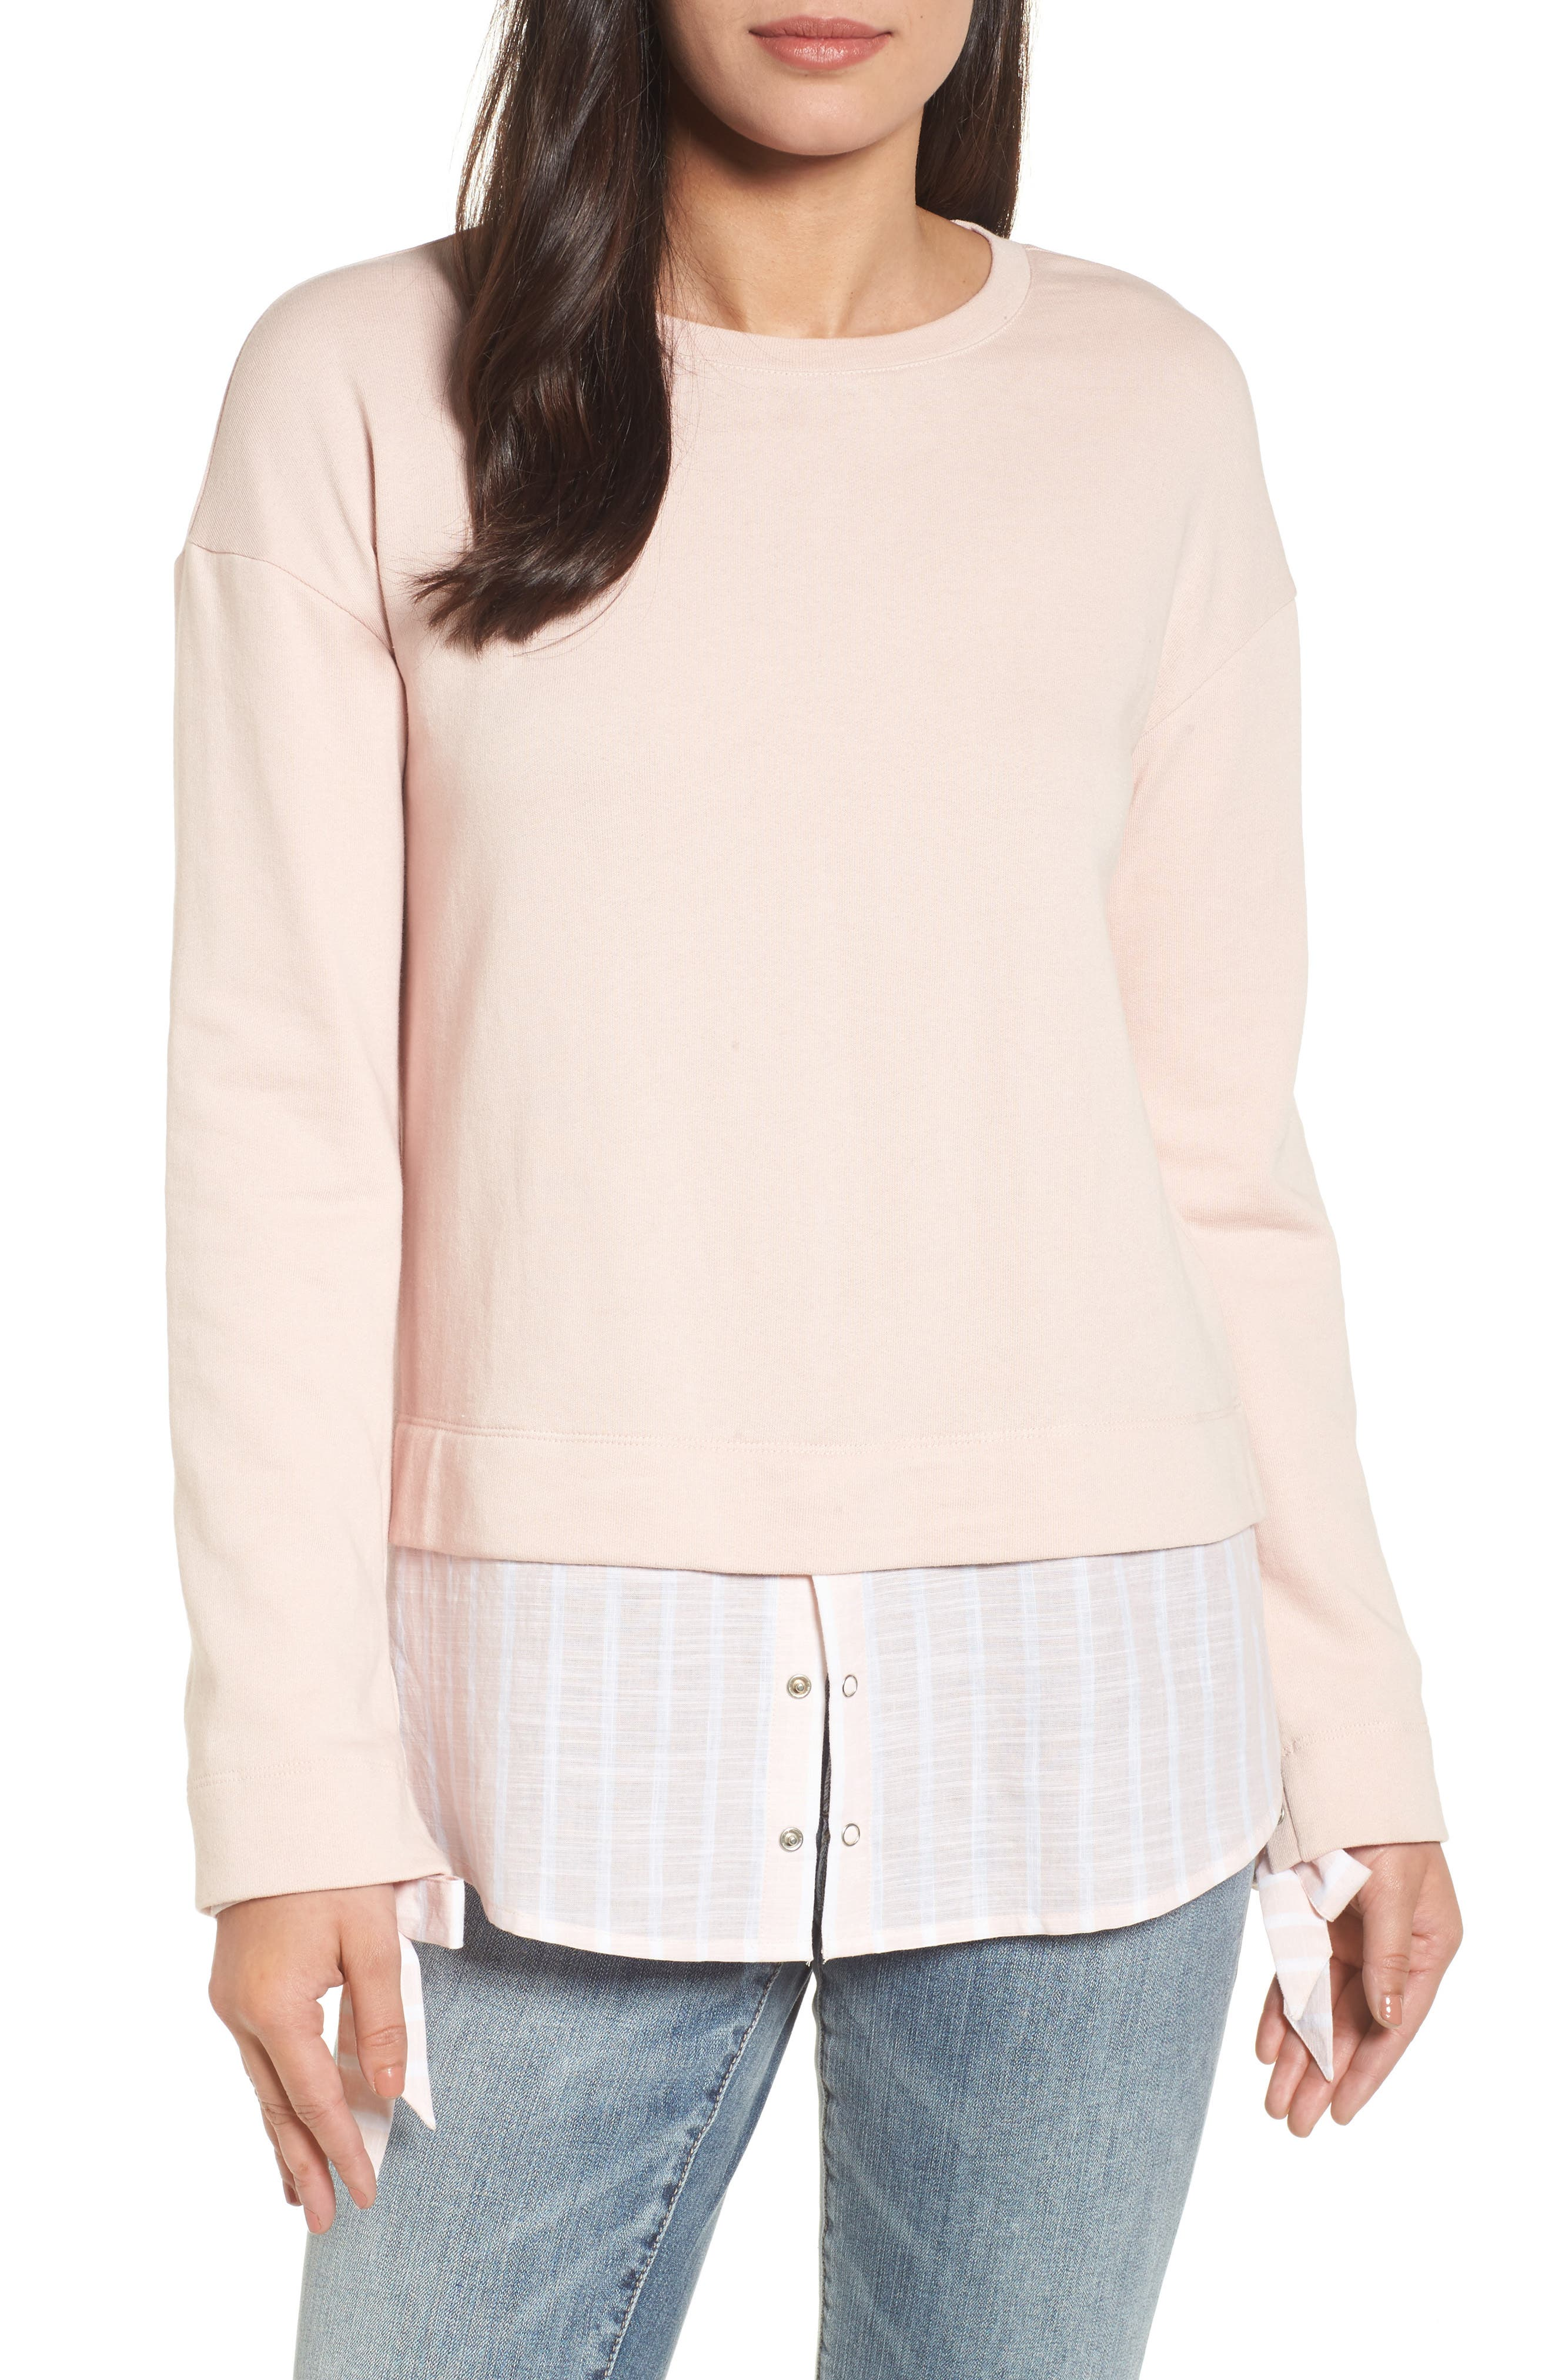 Woven Trim Layered Sweatshirt,                             Main thumbnail 1, color,                             Pink- Stripe Colorblock